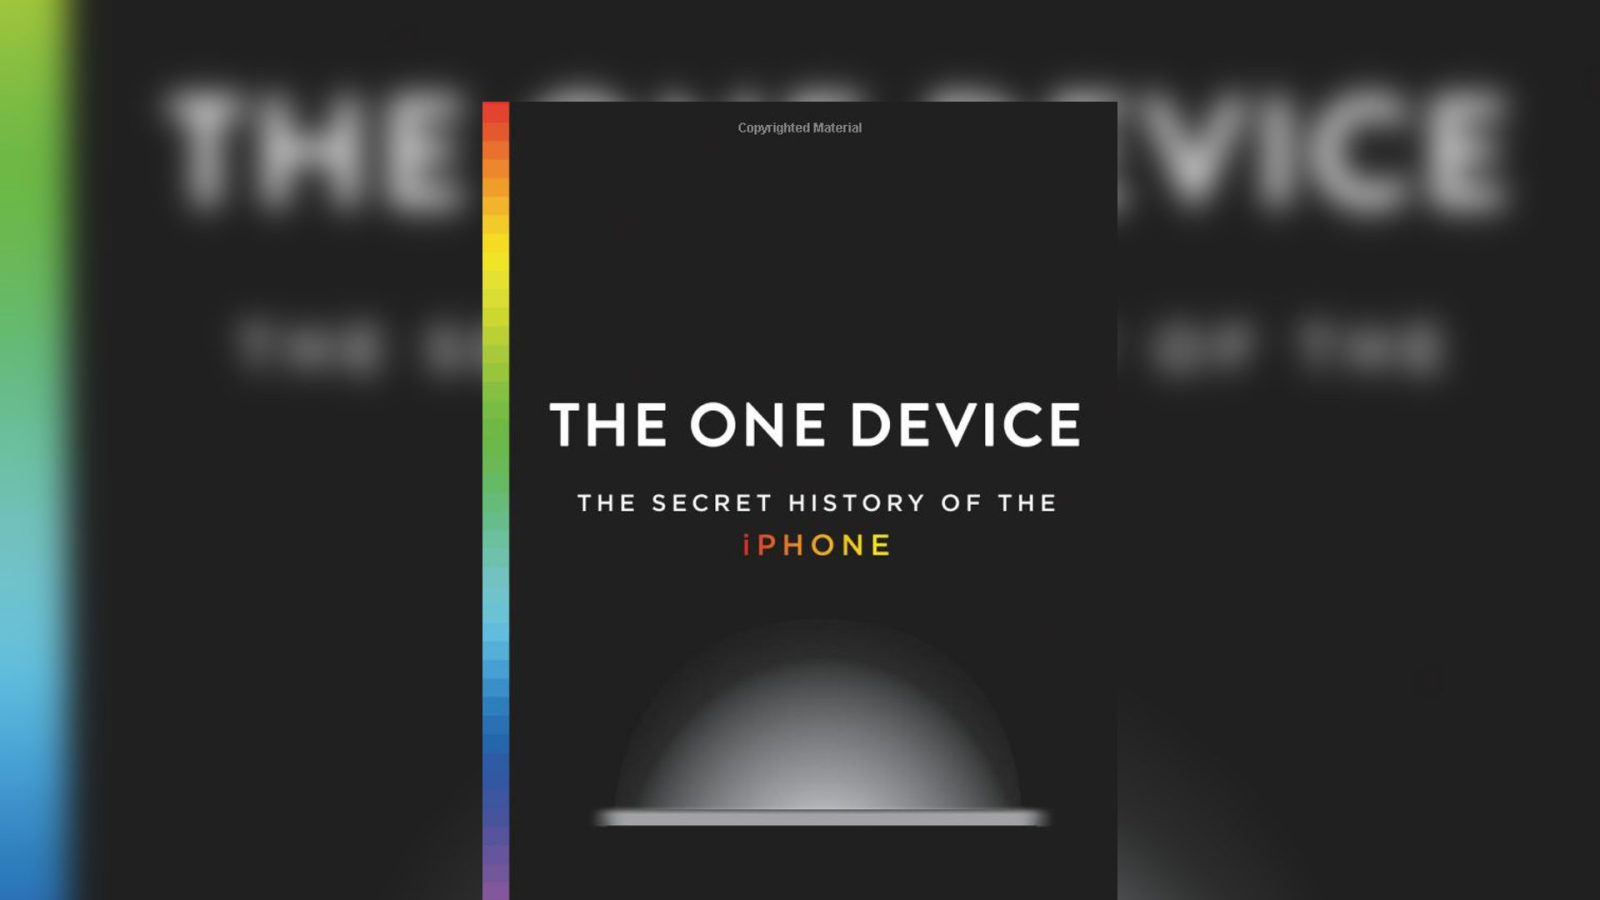 'The One Device' Launches to Mixed Reviews, Tells Story of First iPhone